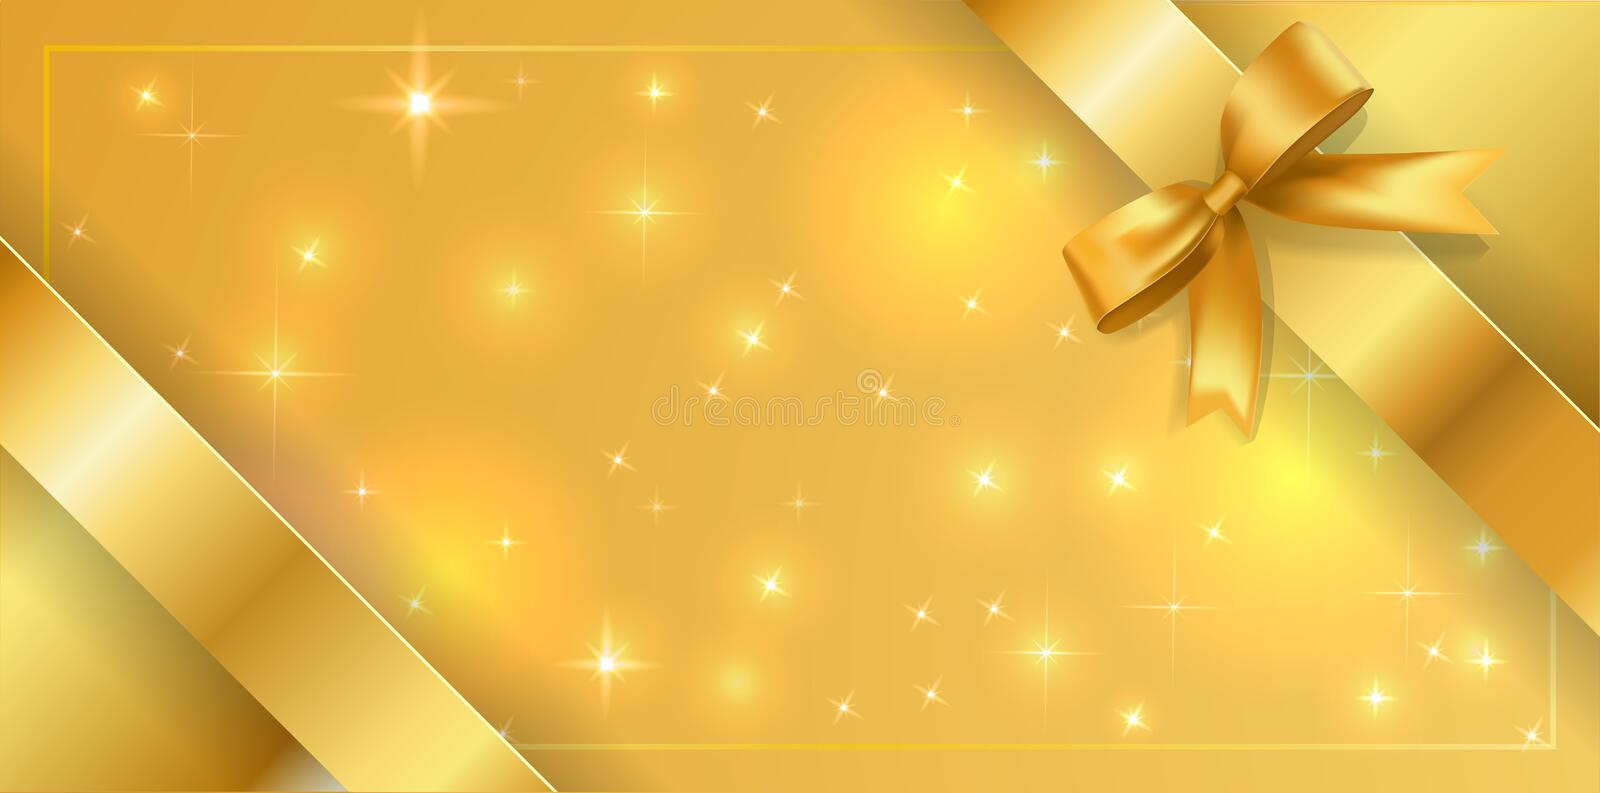 Banner tied with a gold ribbon around the edges diagonally. Golden stars background with bow decoration border. Vector volume mesh royalty free illustration